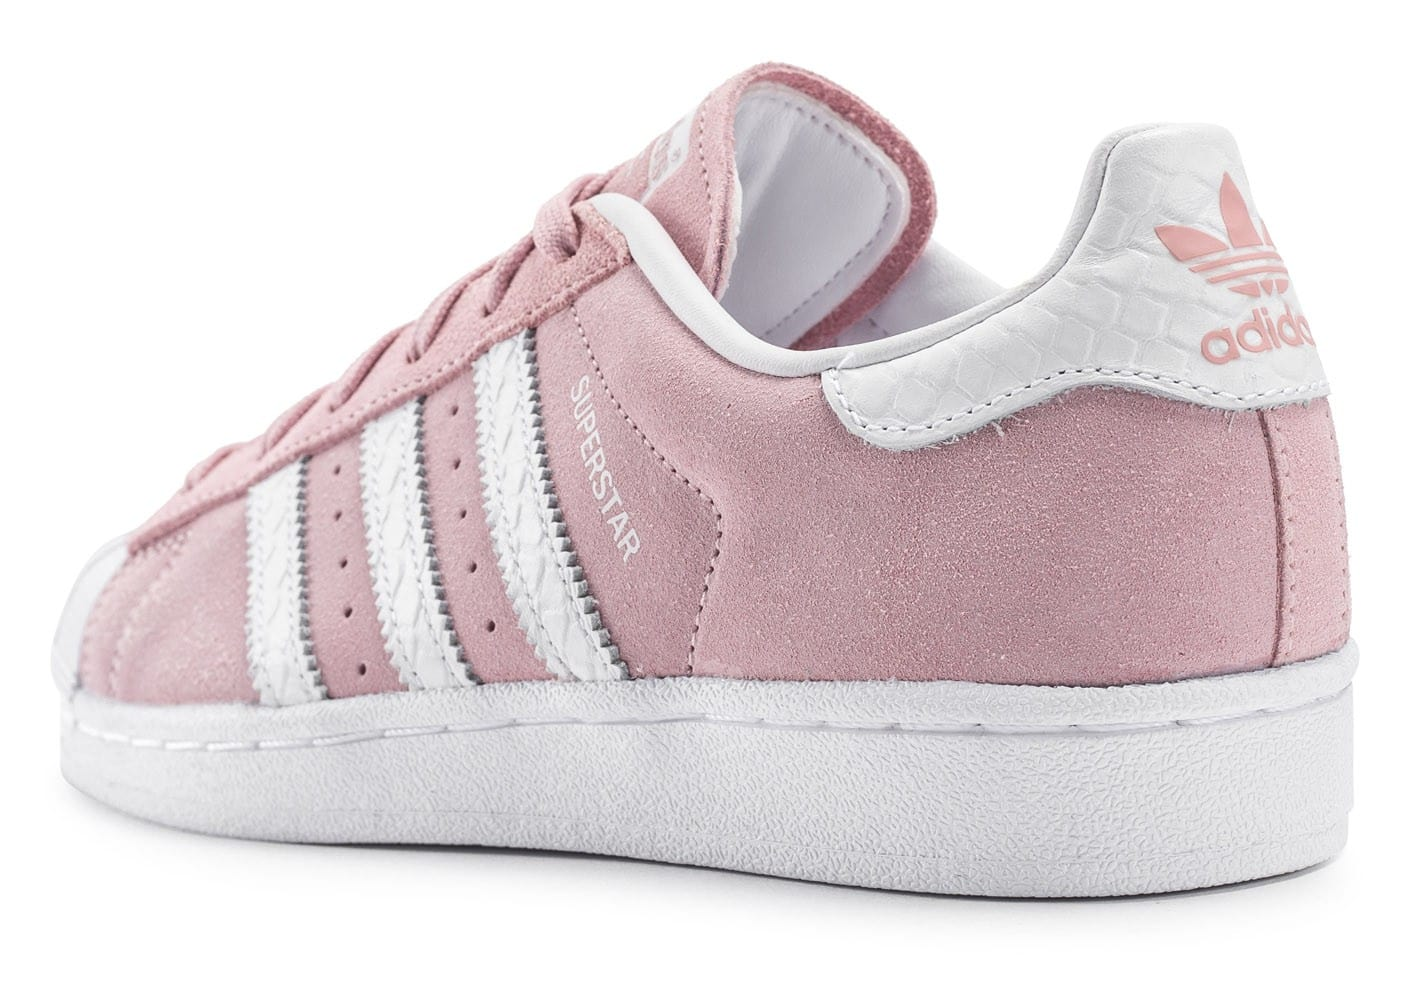 adidas superstar suede rose p le chaussures adidas chausport. Black Bedroom Furniture Sets. Home Design Ideas